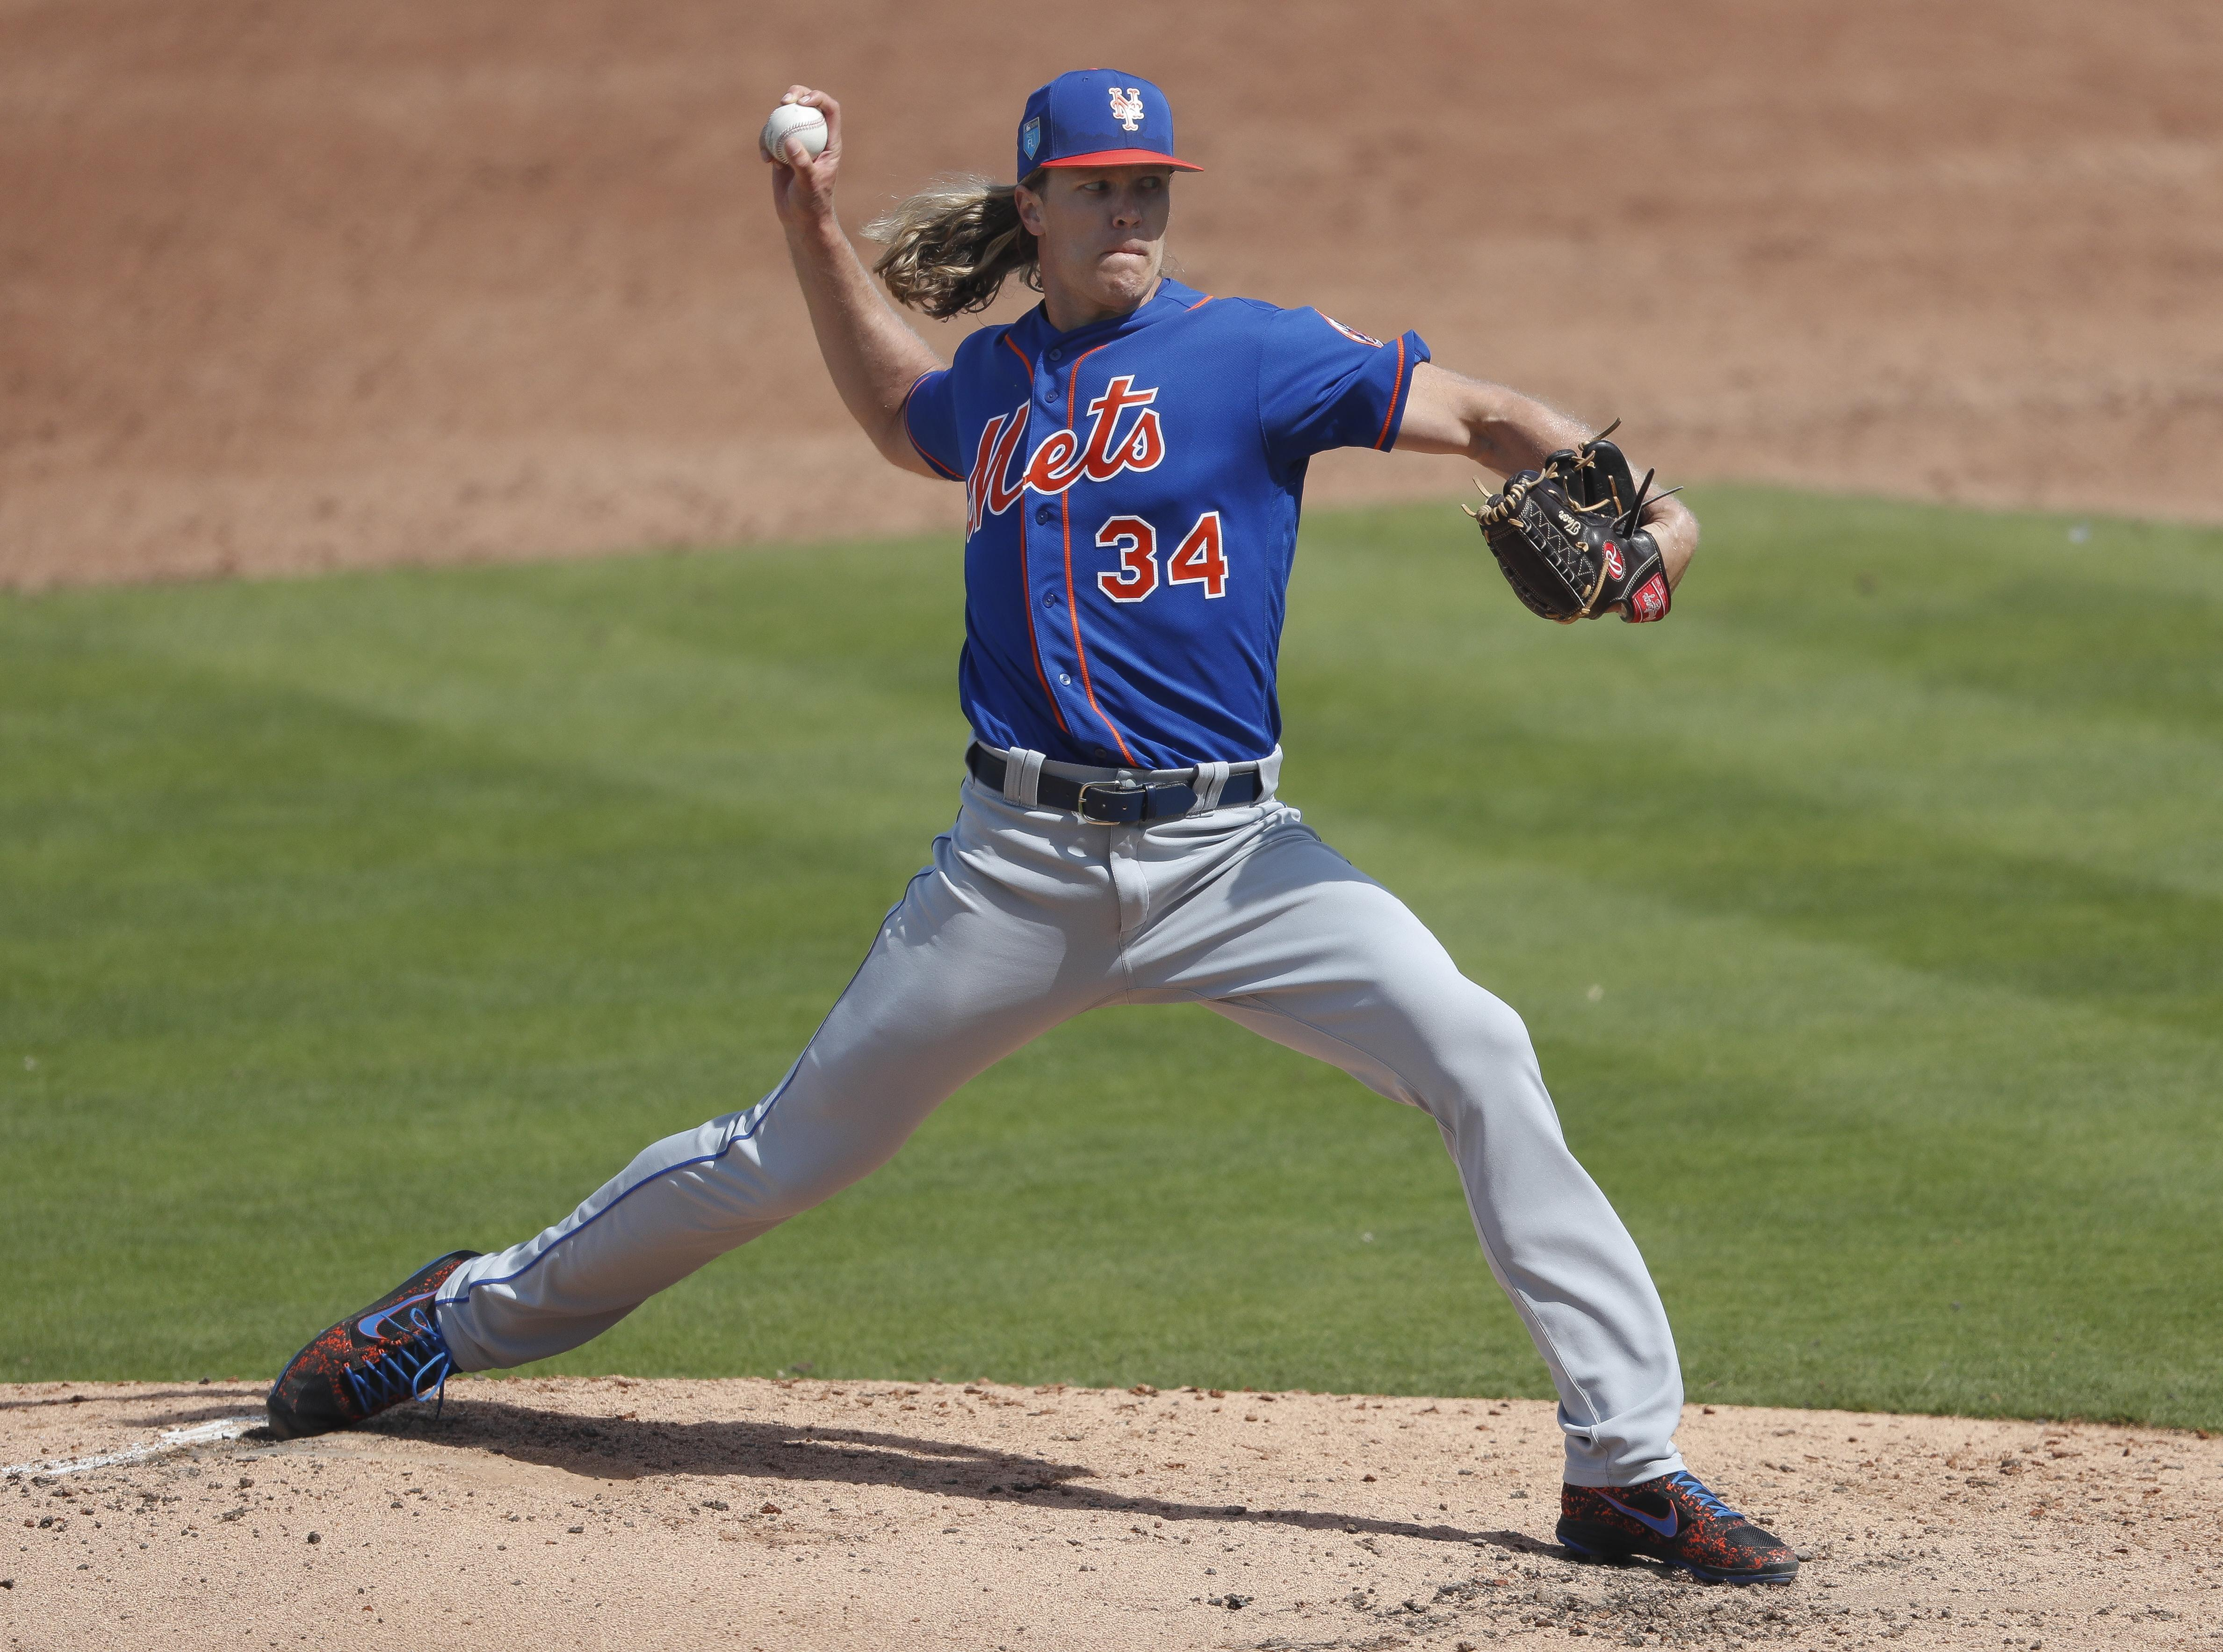 Mets_preview_baseball_49011